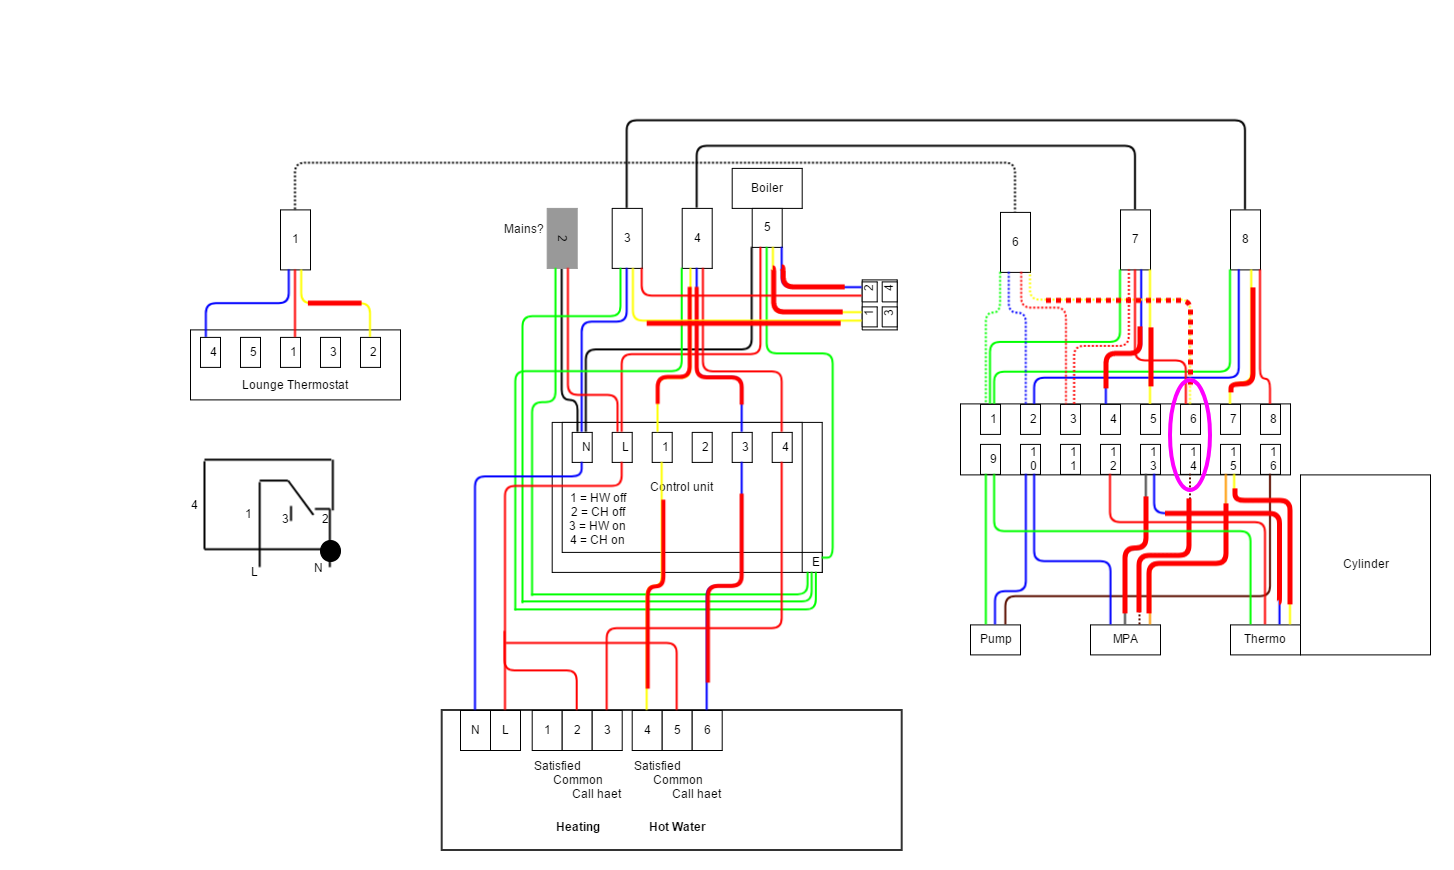 Wiring Diagram For Boiler System - Solution Of Your Wiring Diagram on service wiring diagram, steam boilers old house, engineering wiring diagram, steam boiler accessories, pressure wiring diagram, steam boiler generator, grinder wiring diagram, boiler schematic diagram, steam boiler control diagram, steam boiler specifications, steam boiler troubleshooting, steam boiler pressure setting, steam boiler data sheet, steam boiler door, residential boiler diagram, evaporator wiring diagram, boiler and storage tank installation diagram, commercial boiler diagram, electric steam boiler diagram, steam boiler lighting,